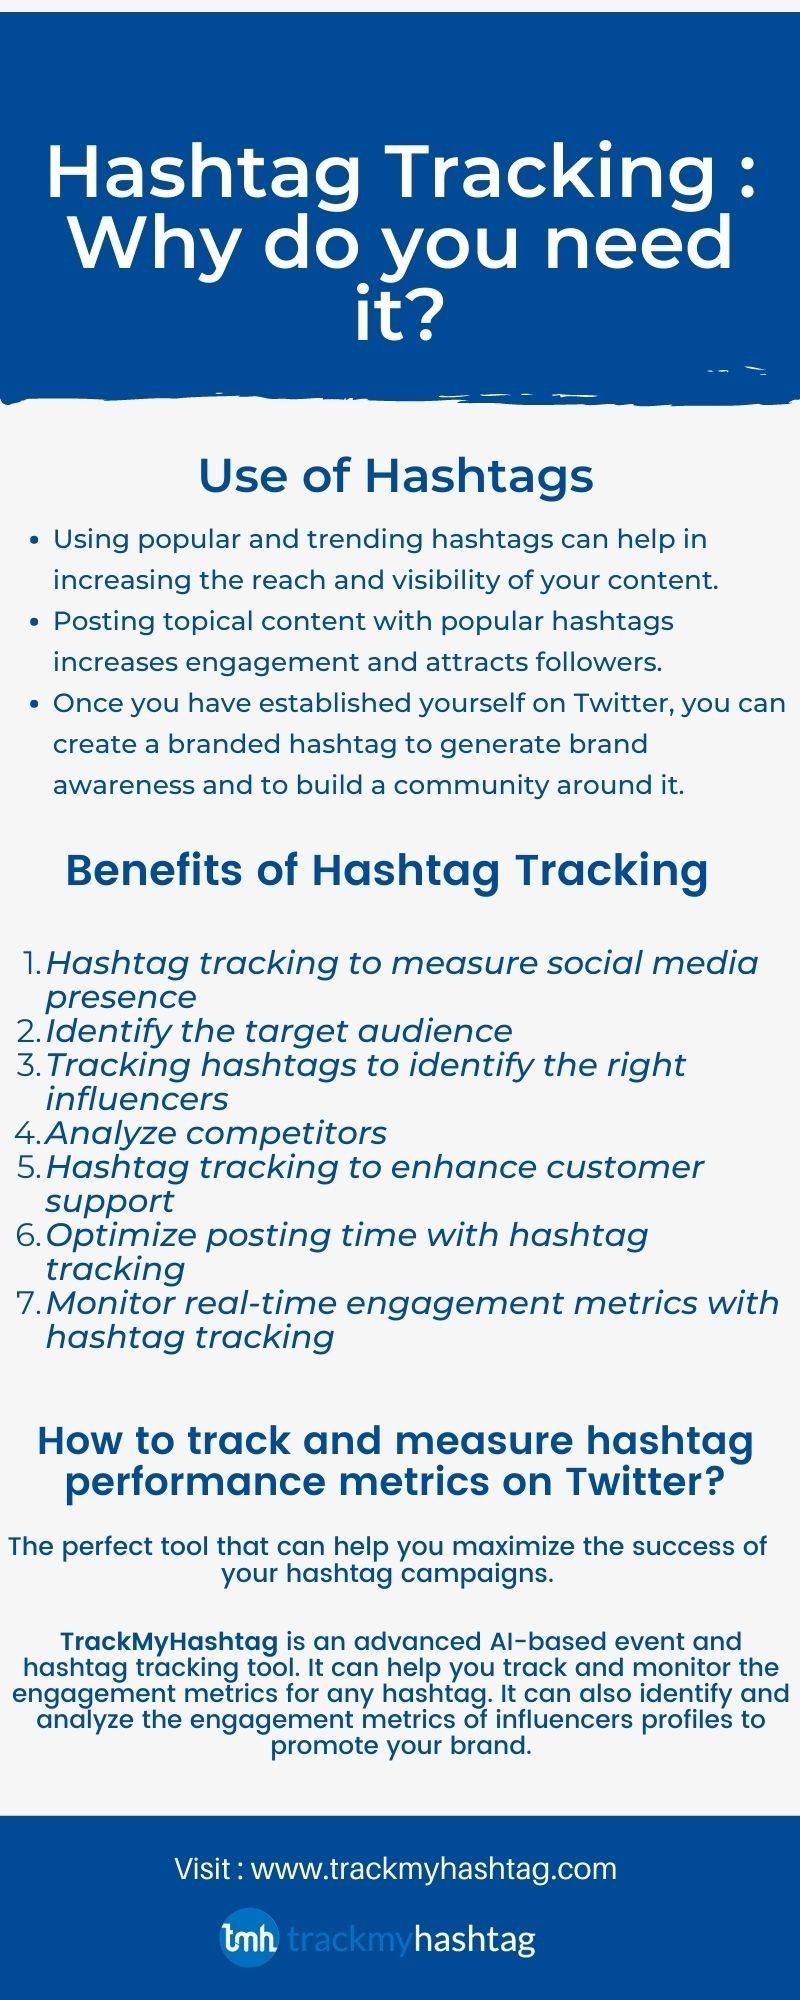 Hashtag Tracking : Why do you need it?